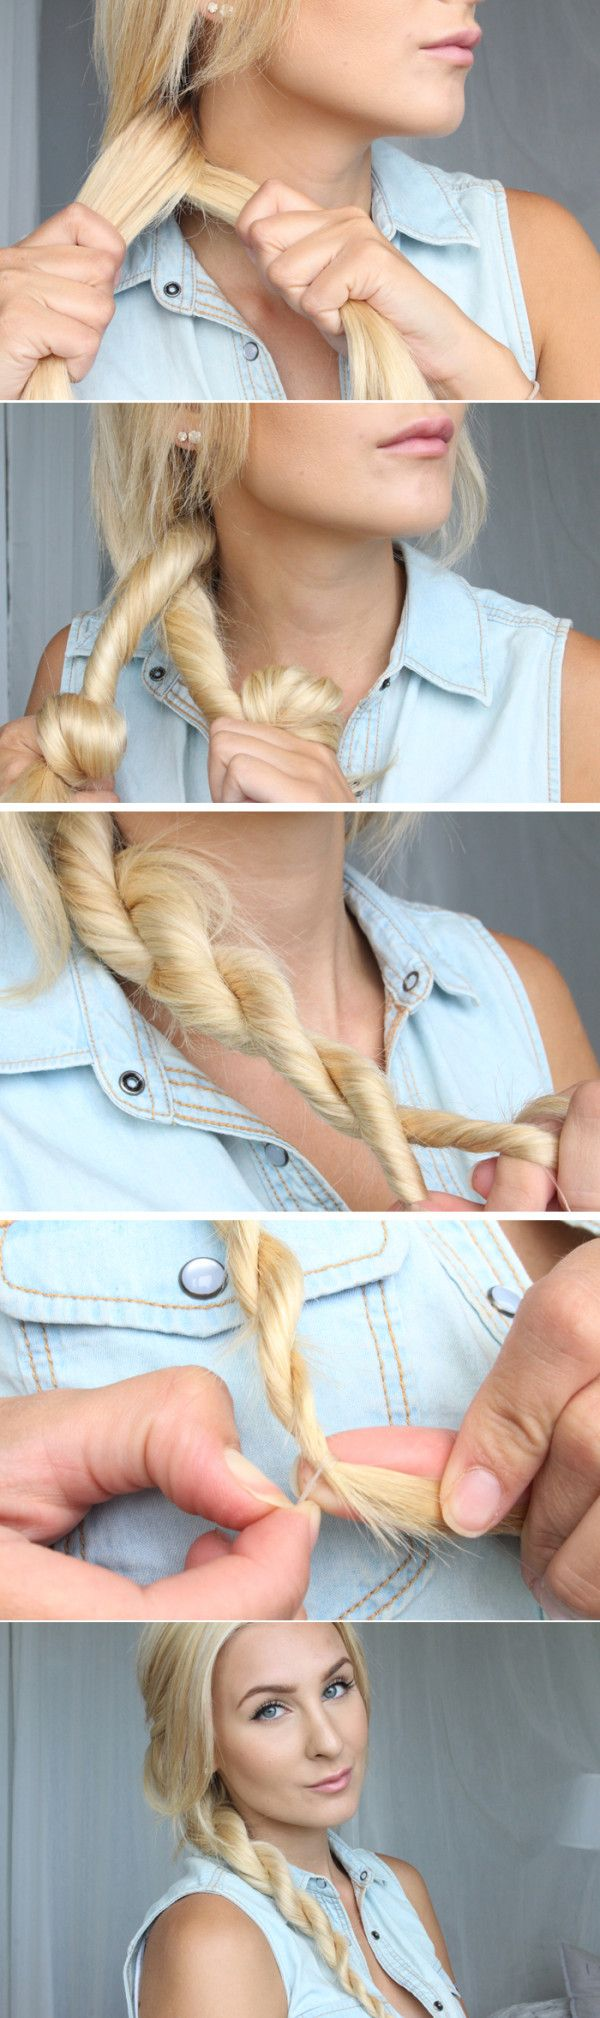 handmade jewelry designs  Amazing Hairstyle DIY Ideas For Lazy Girls Ready For Less Than a Minute